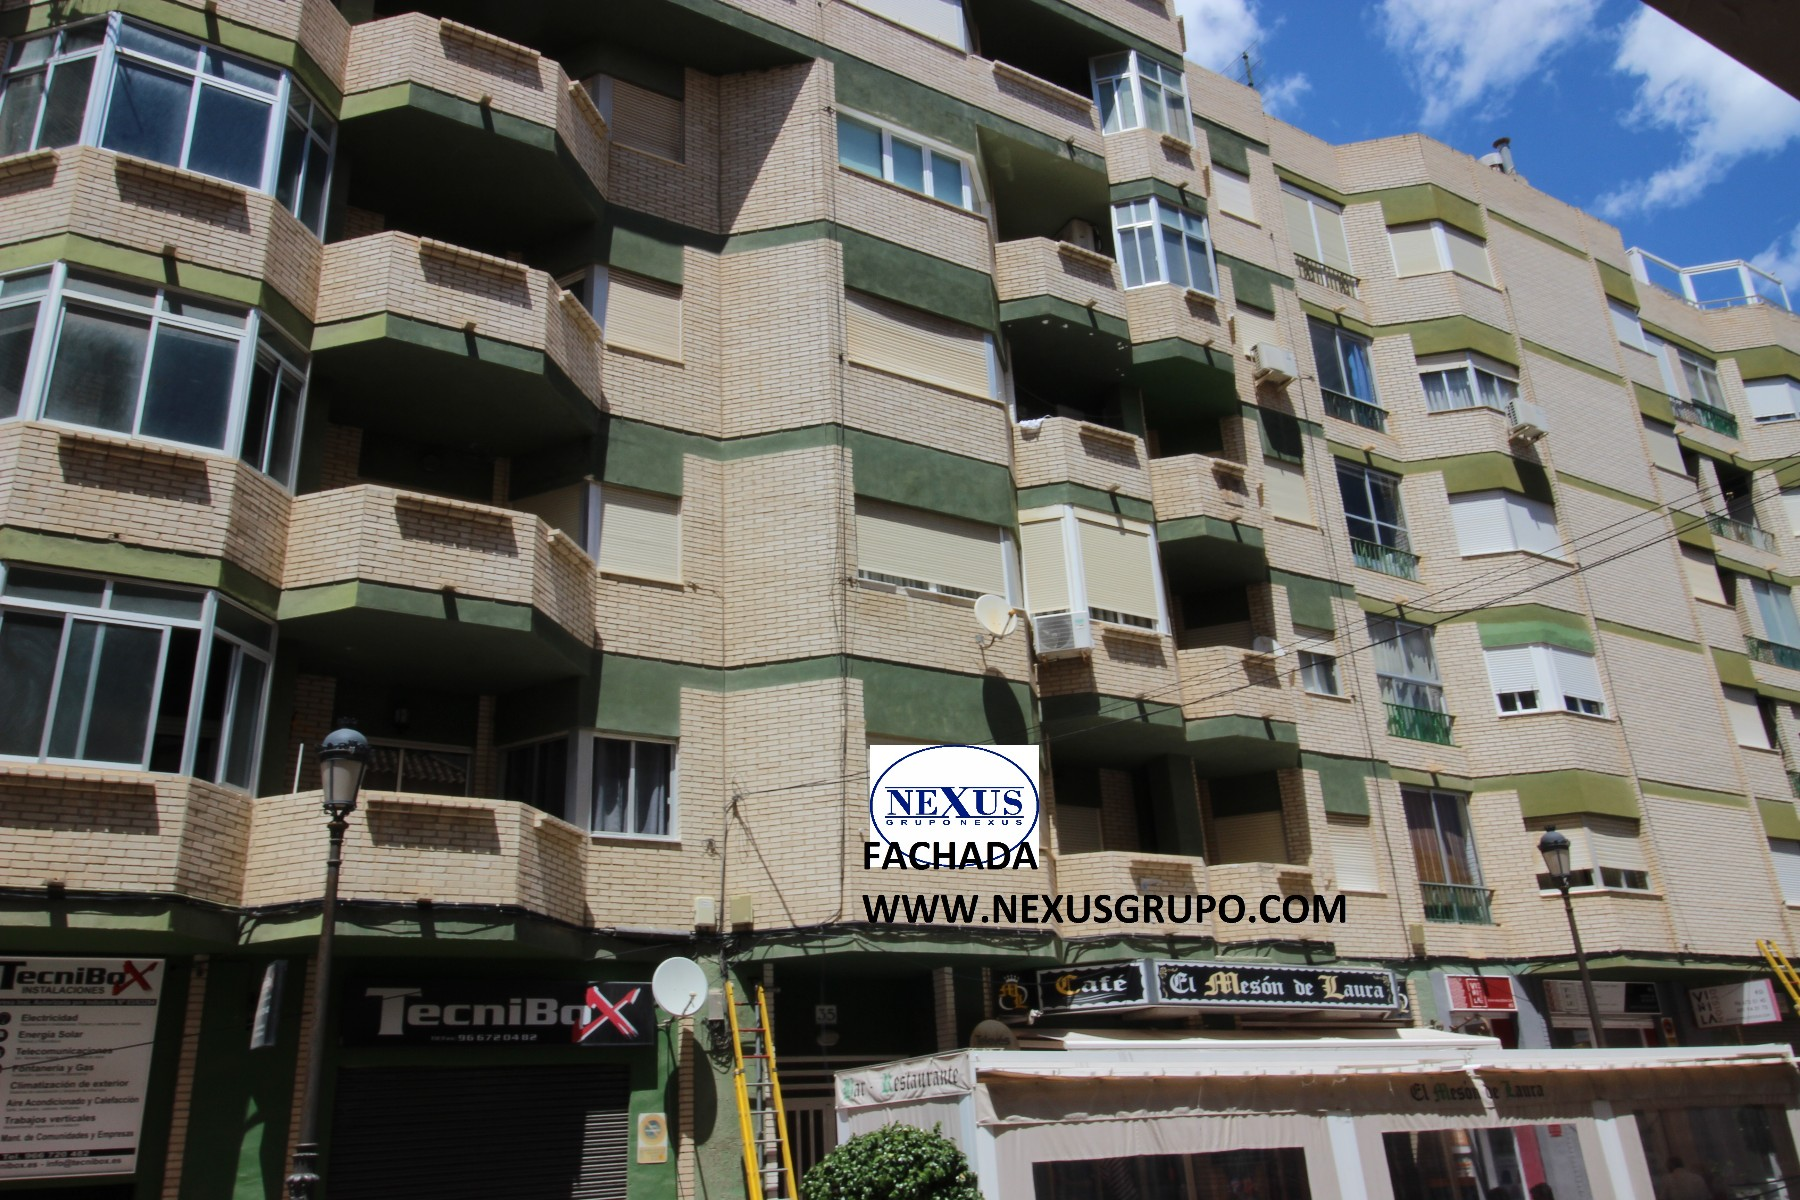 GRUPO NEXUS ESTATE AGENCY SELLS AN EXCELLENT RENOVATED APARTMENT!